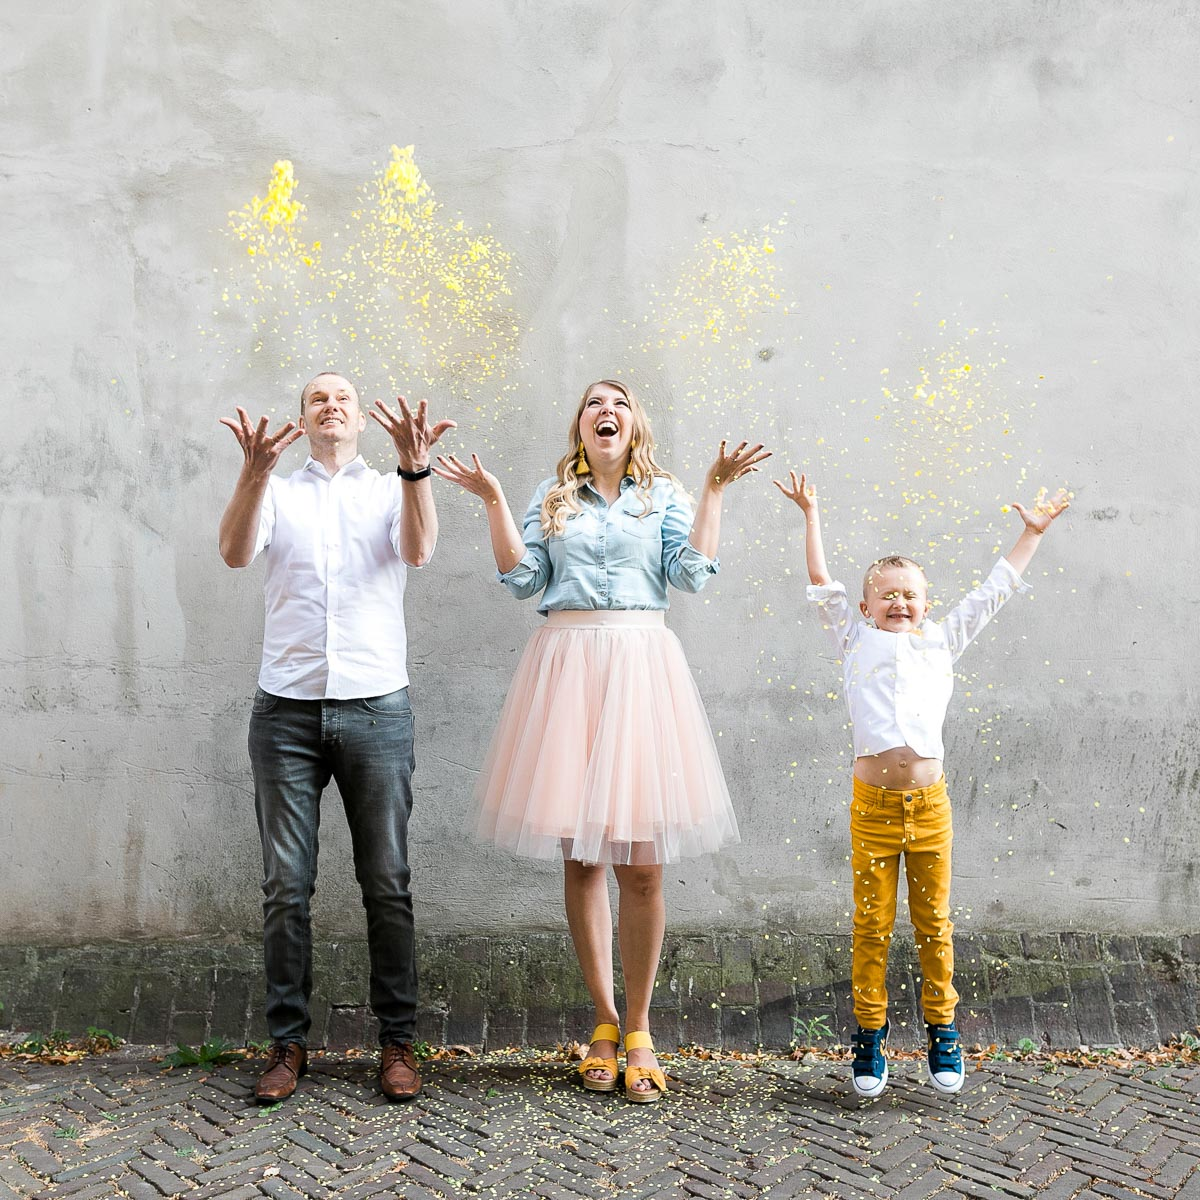 Sander-Eline-Noah-van-der-Woude-Wood-and-Gems-Utrecht-confetti-reviewblog-Happy-Family